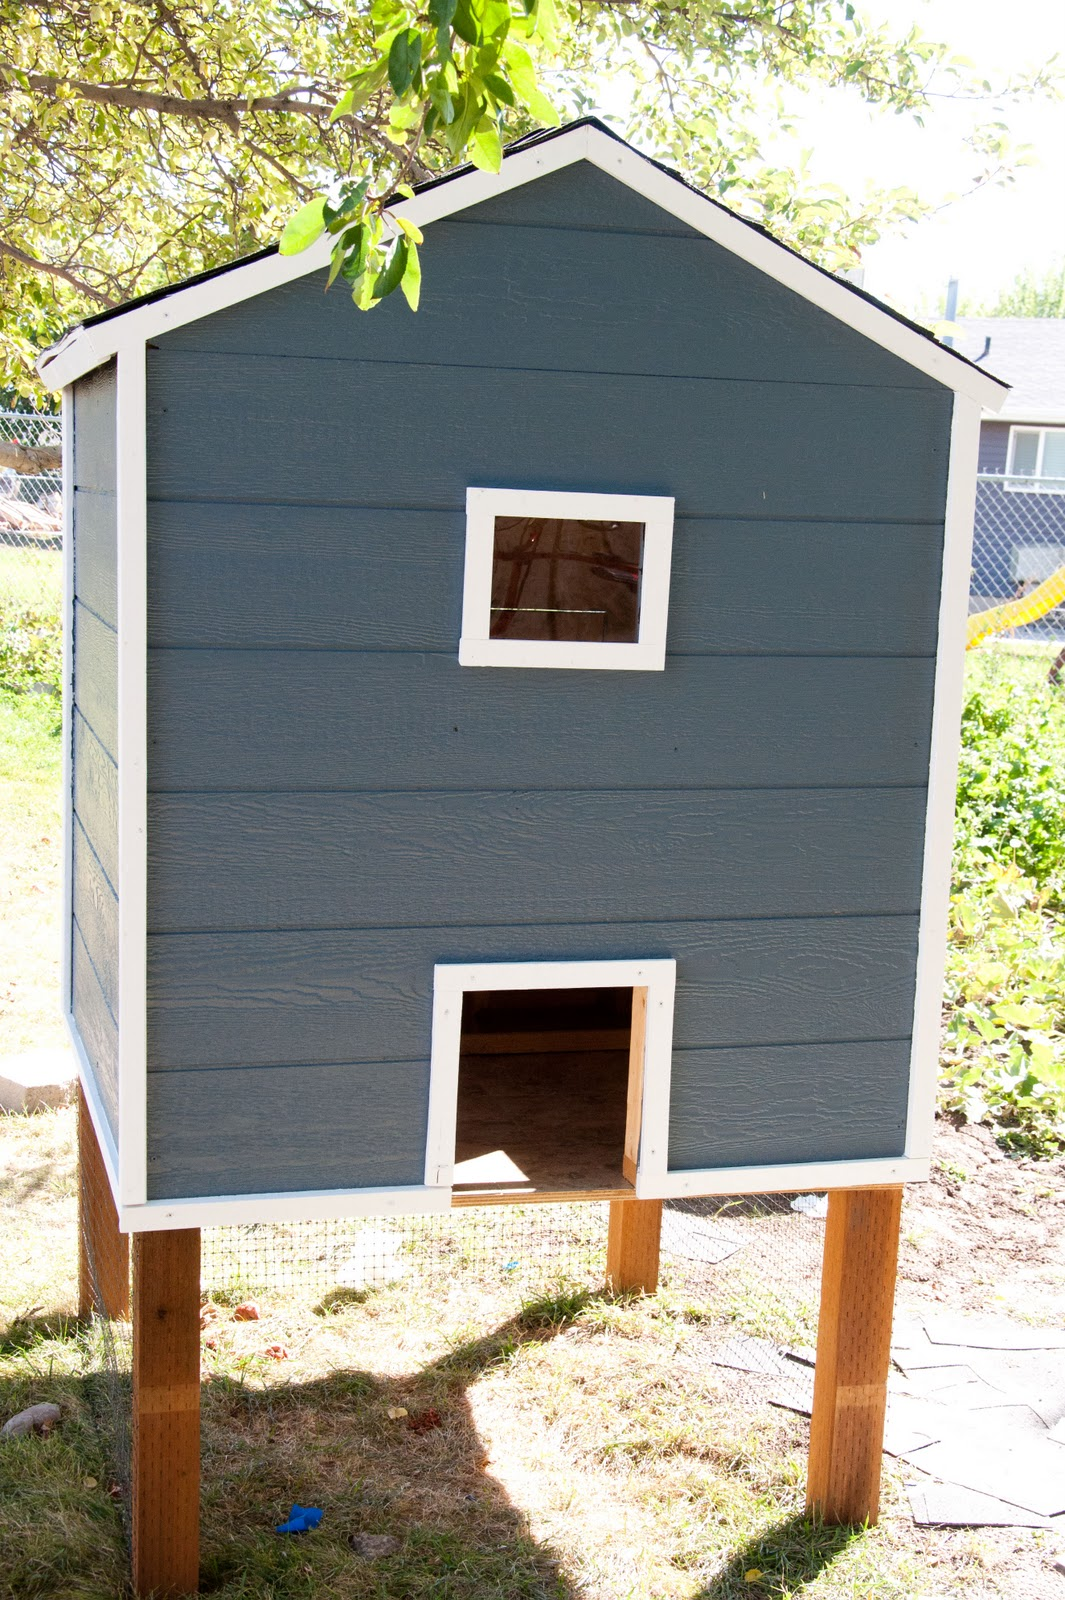 Bodem Kippenren Our Chicken Coop A Story Of Chickens Housewives Of